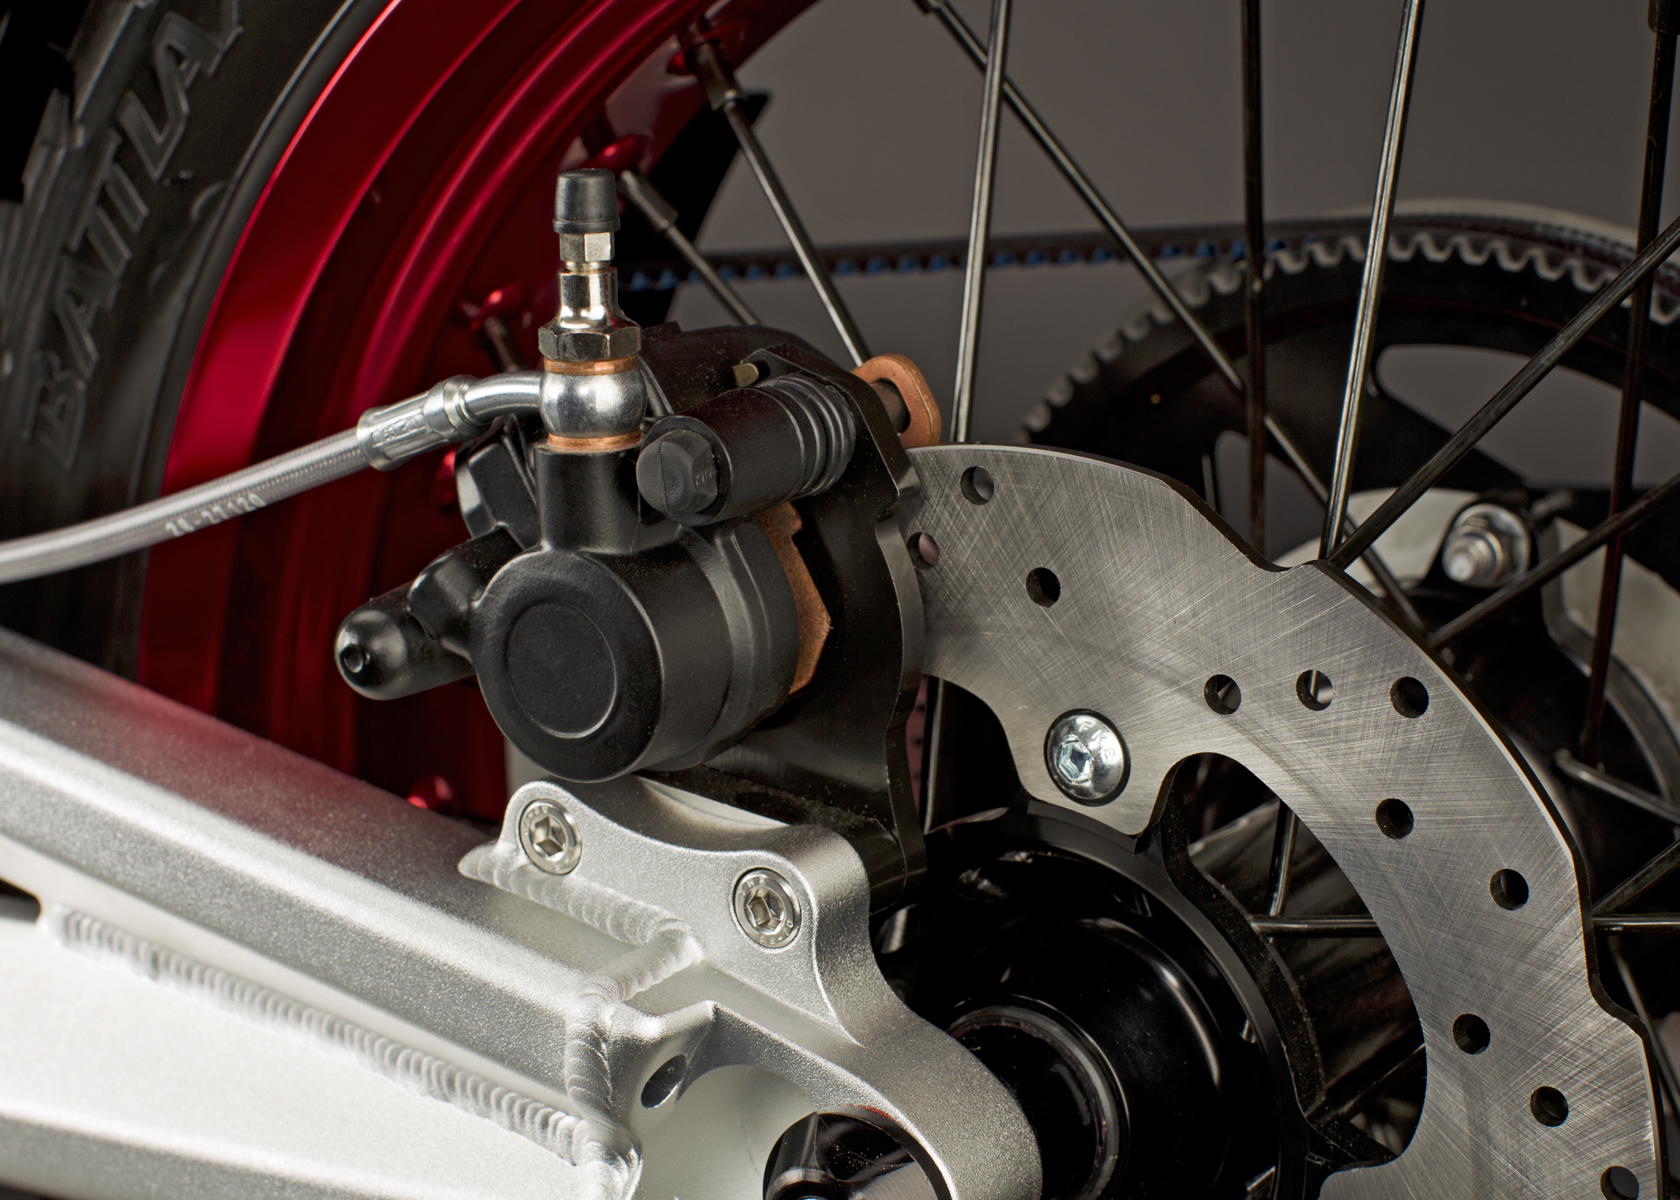 2011 Zero S Electric Motorcycle: Back Brake